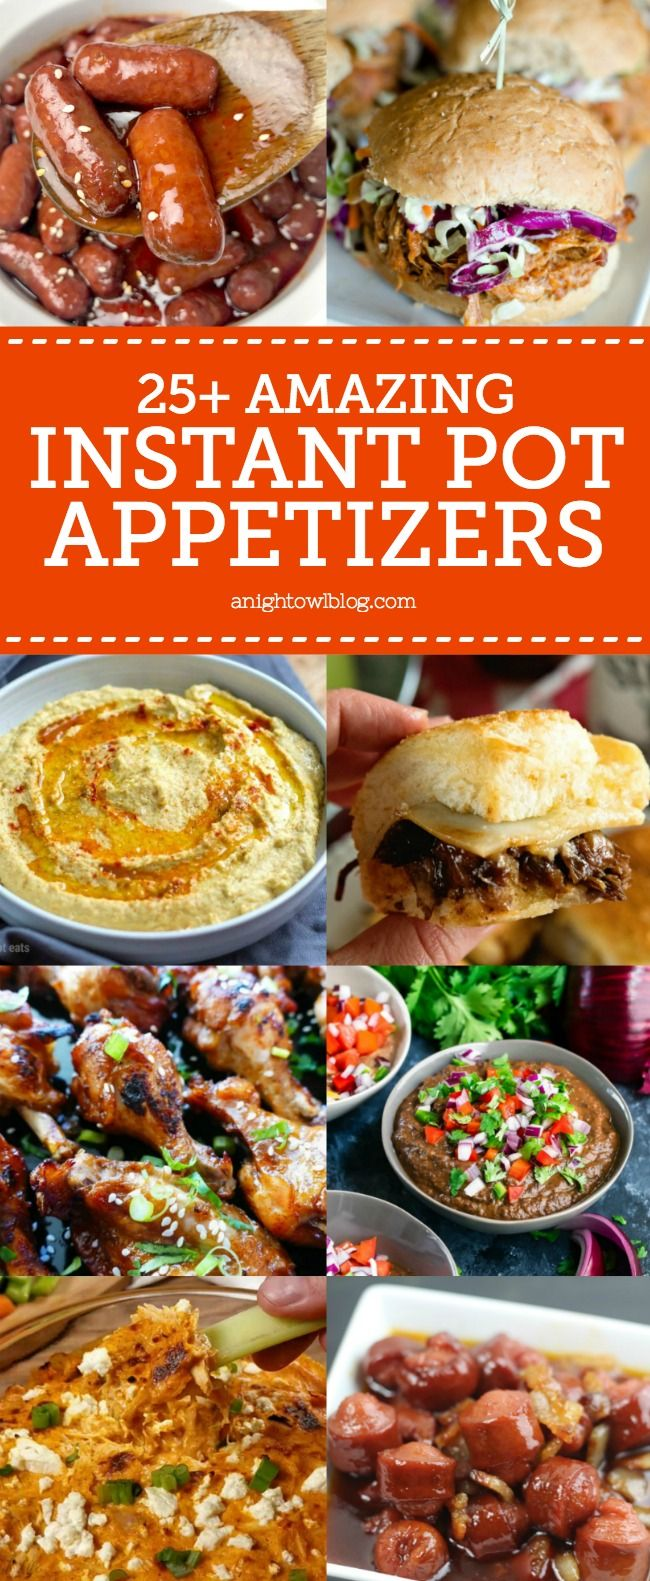 From BBQ Pulled Pork Sliders to Lil Smokies, discover over 25 Instant Pot Appeti…